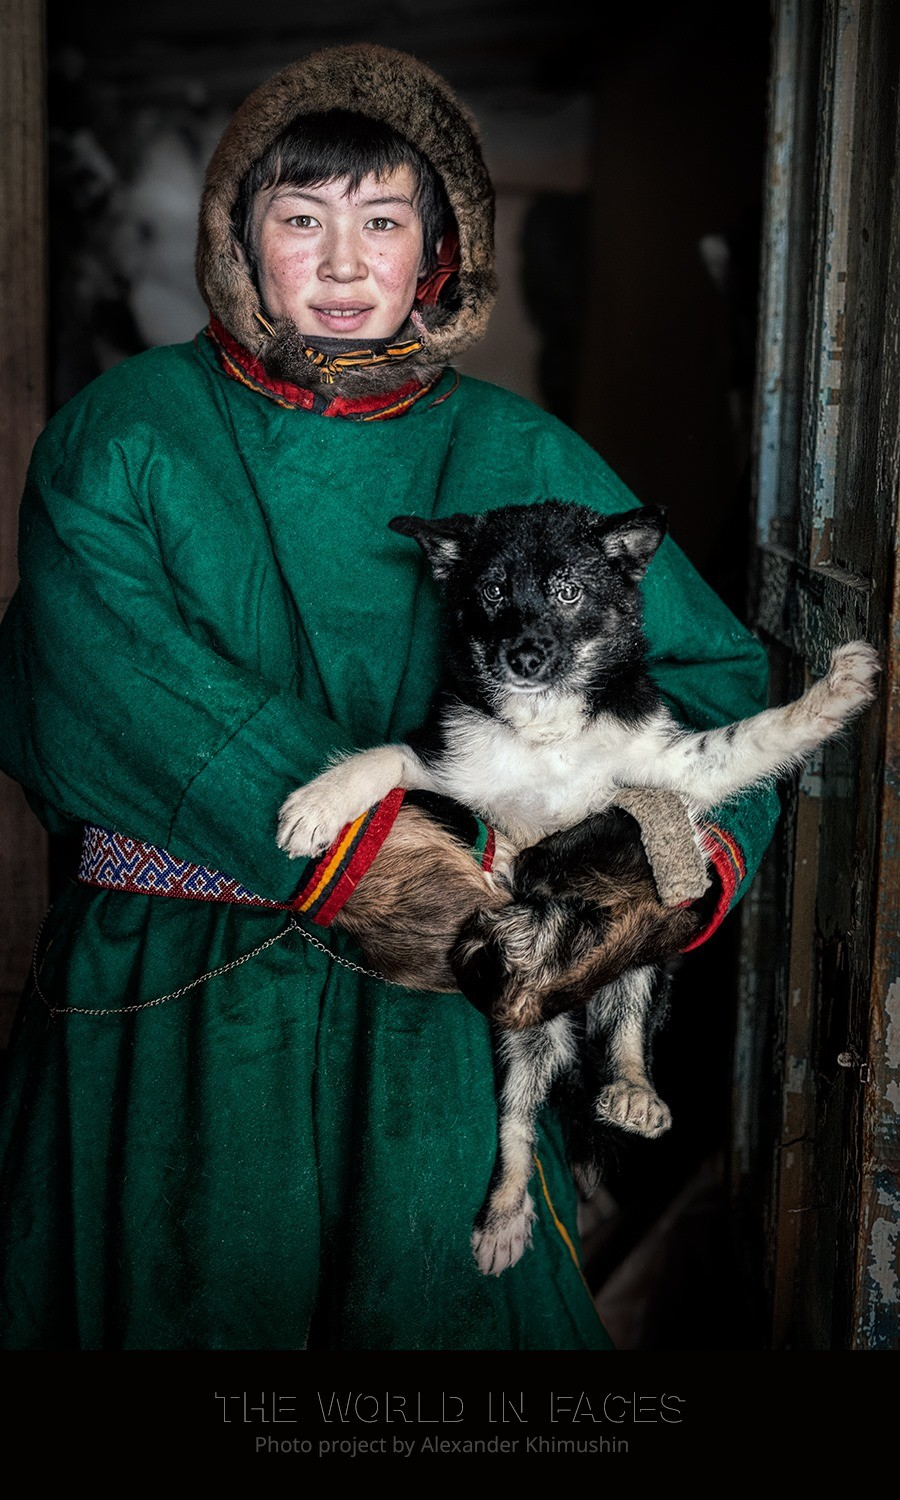 A young Nenets man with a dog.